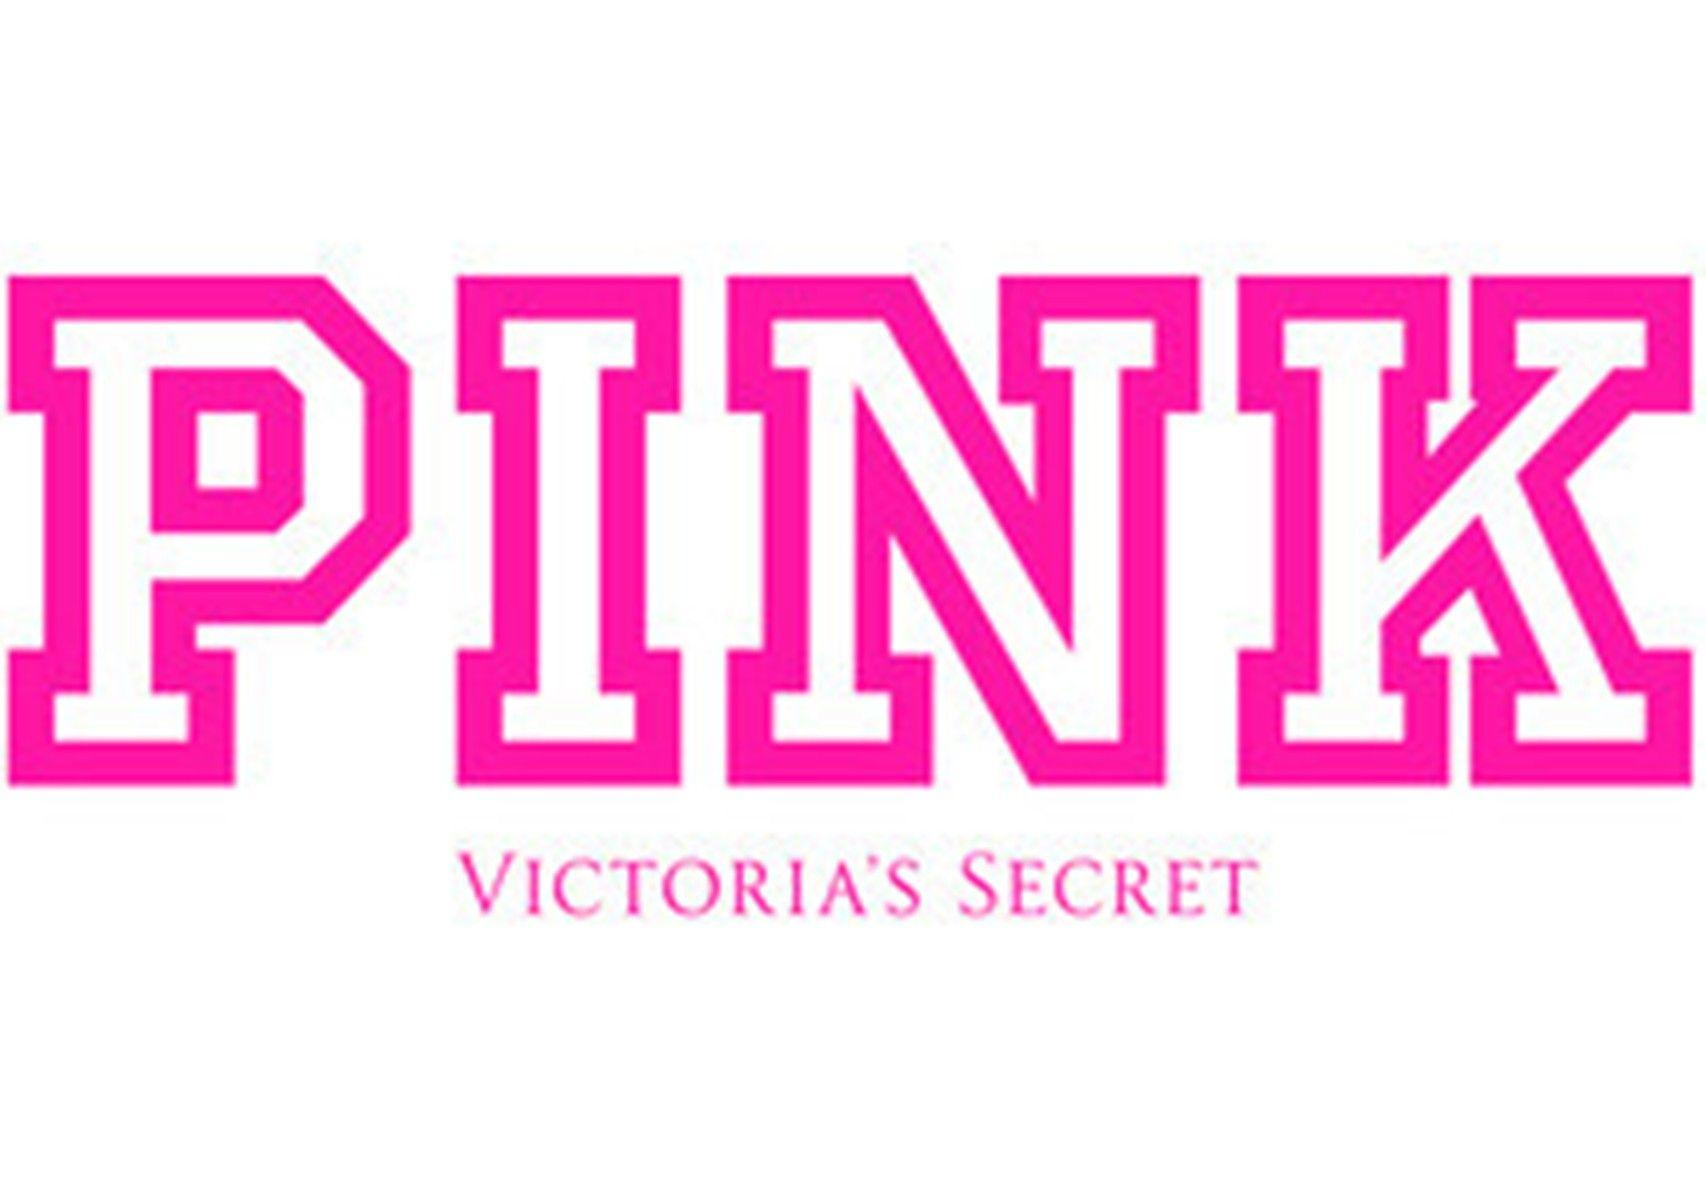 Victoria Secret Logo Wallpaper   Desktop Background Wallpapers HD. Wallpapers Victoria Secret   Wallpaper Cave